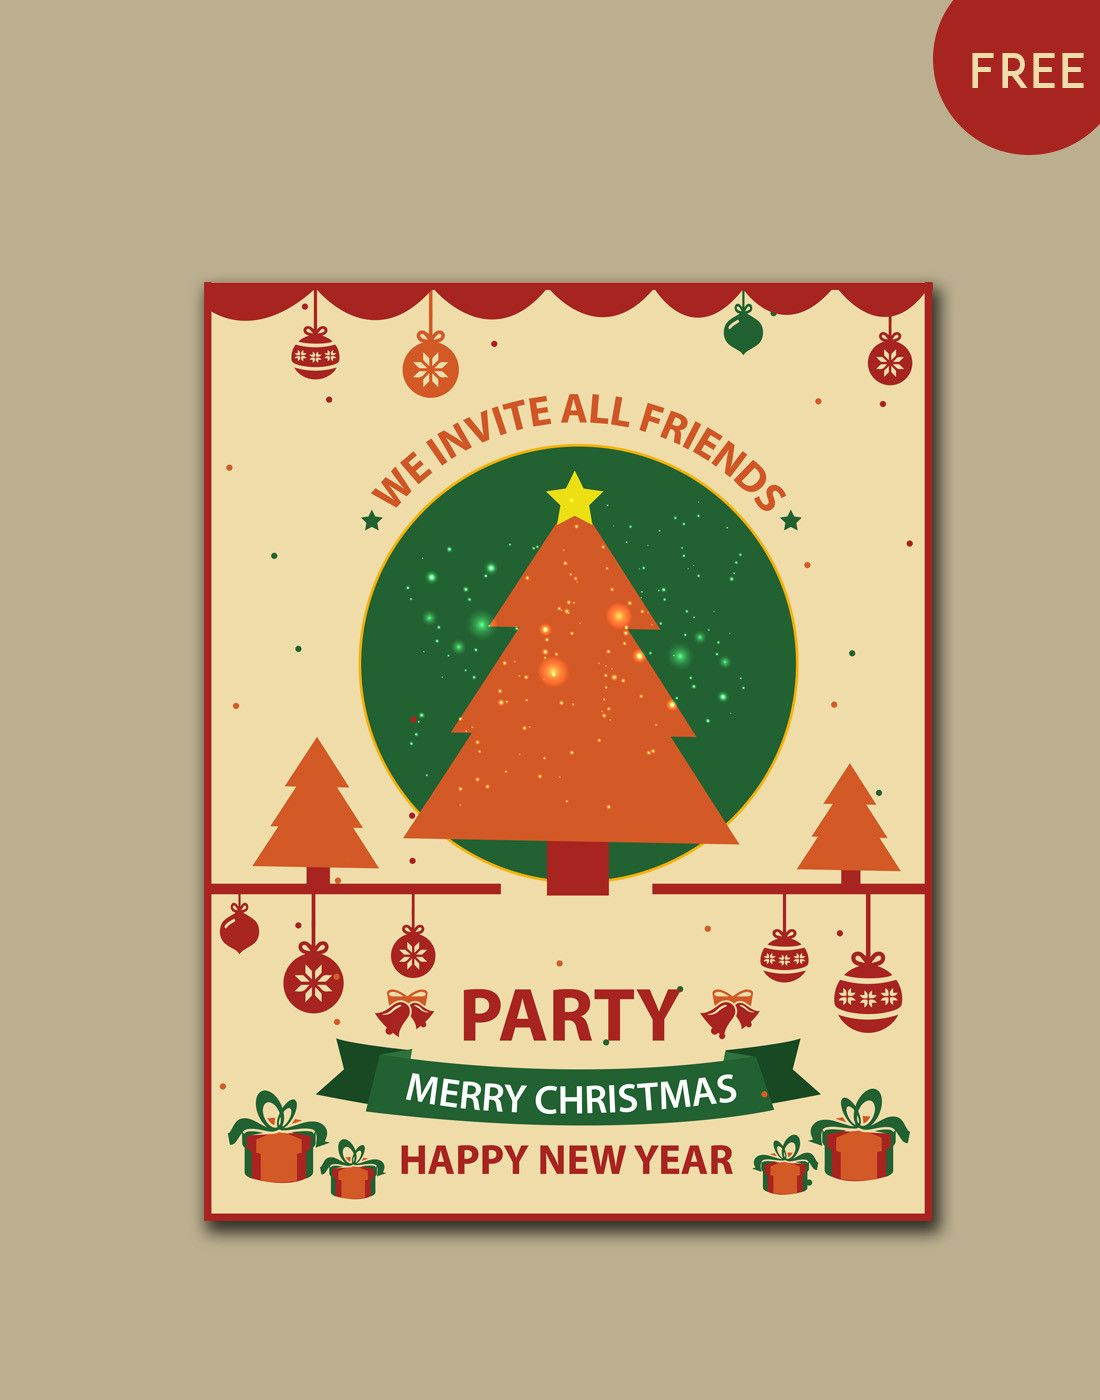 Christmas Party Invitation Template in 2020  Christmas party invitations free, Christmas party